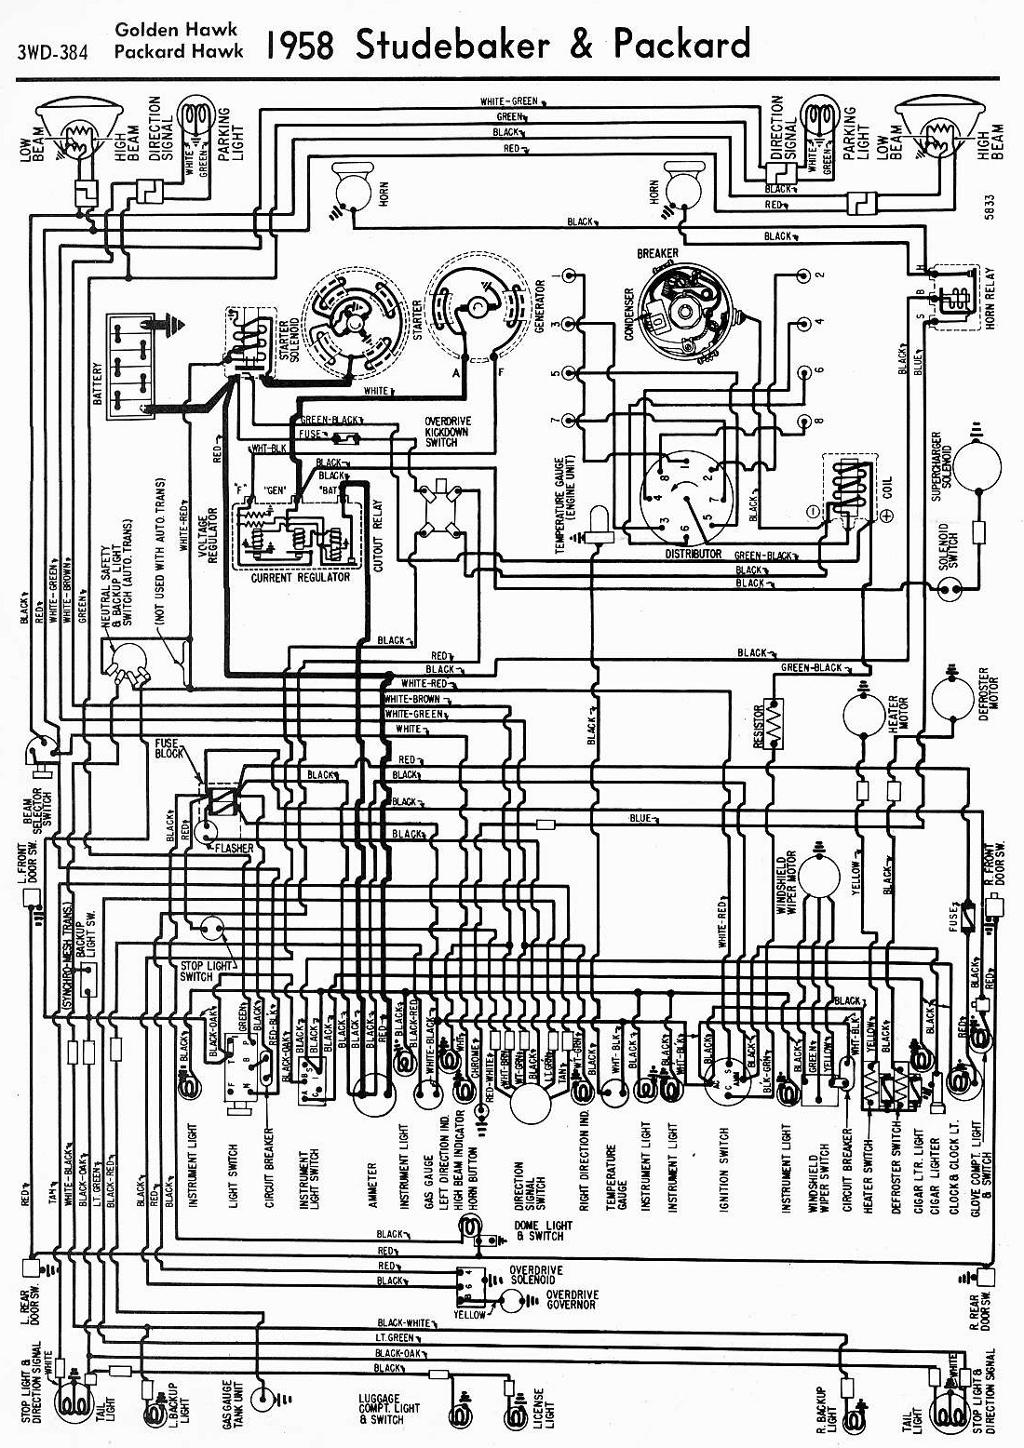 1958 Opel Wiring Diagram Electrical Diagrams Packard Car Manuals Pdf Fault Codes Rh Automotive Net 1962 1961